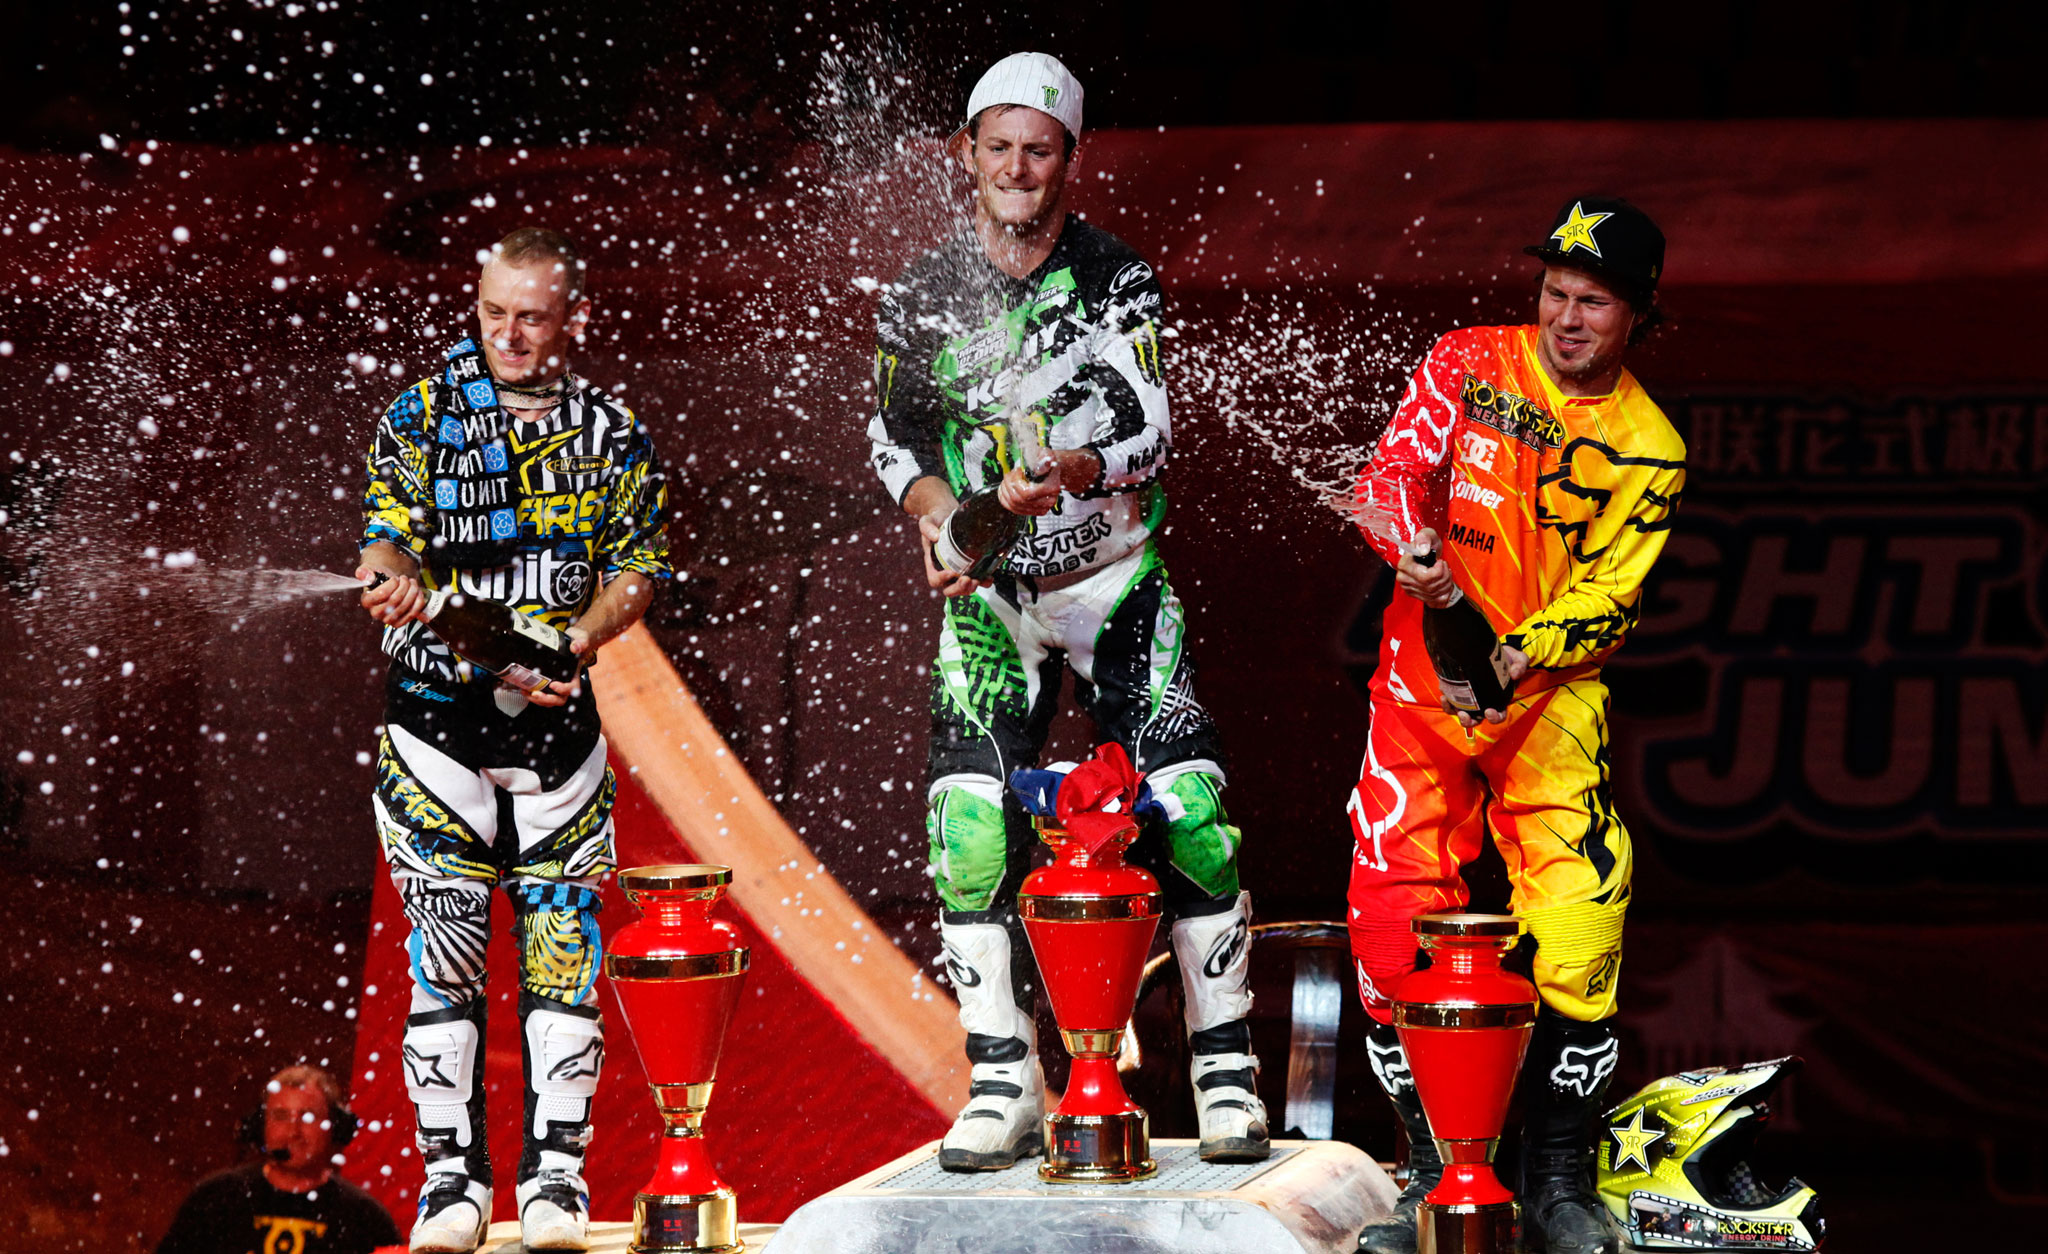 Rmi Bizouard celebrates with Maikel Melero, left, and Libor Podmor, right, after winning Round 8 of the 2012 FIM World Championship series on Saturday in Guangzhou, China.